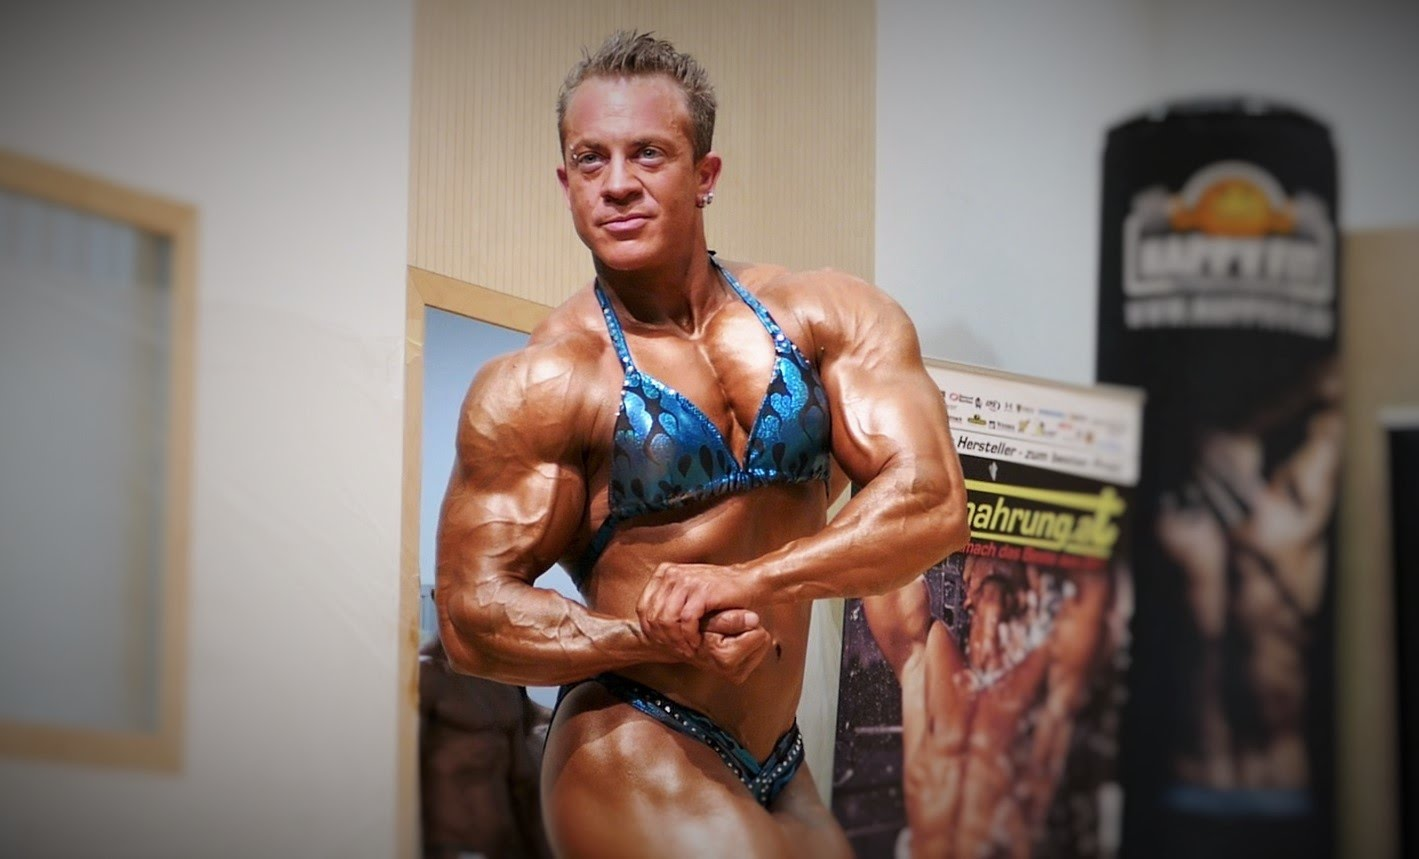 Transexual Muscle 109